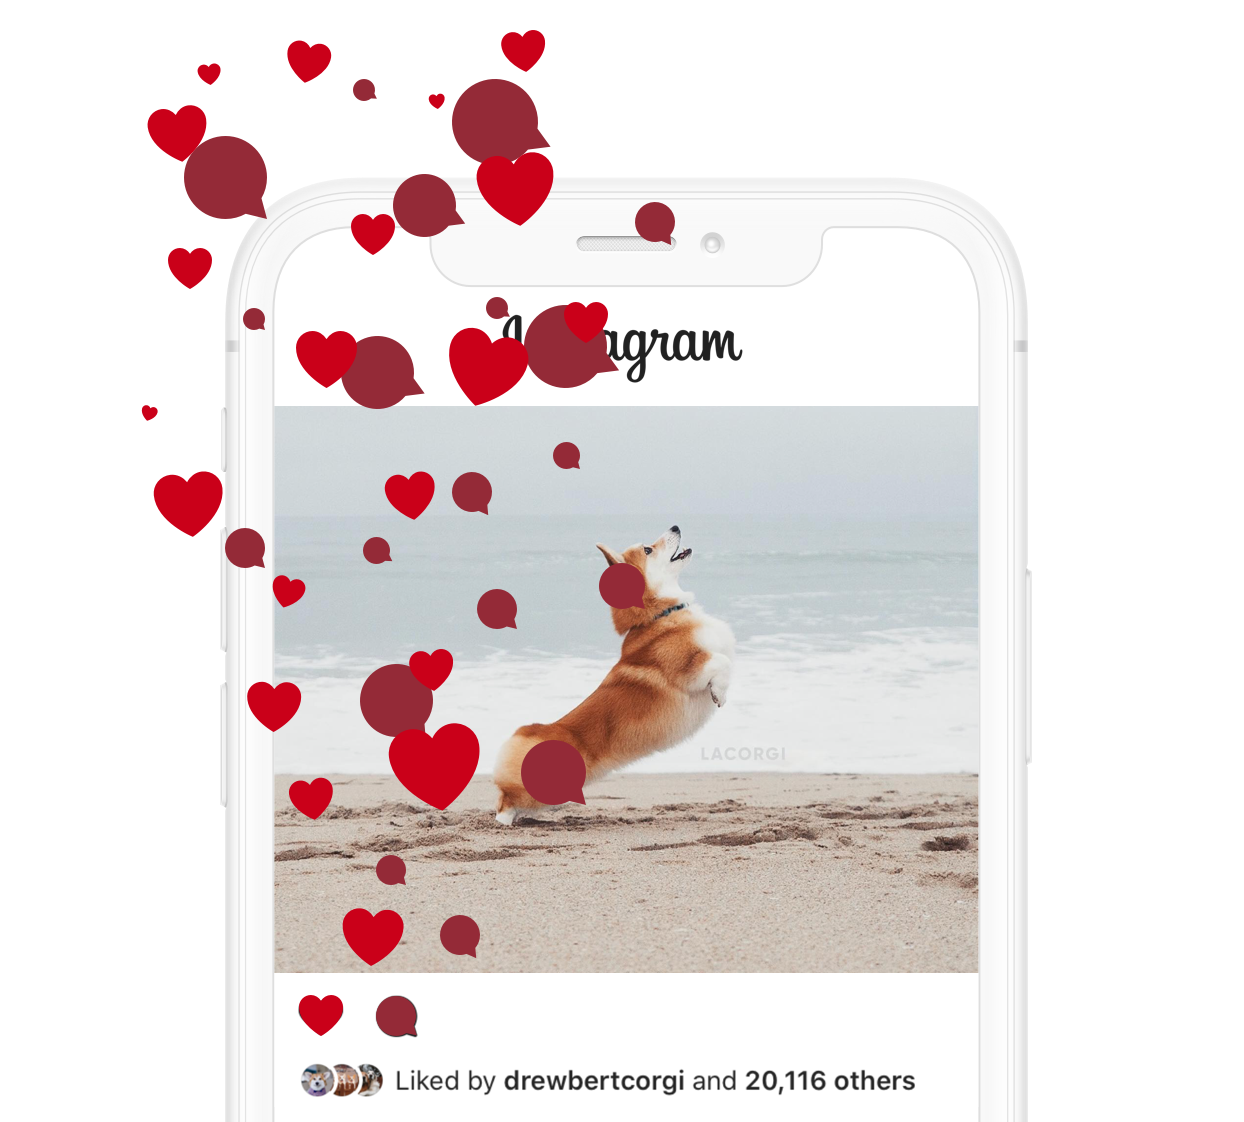 Drive engagement on Instagram with brand ambassadors